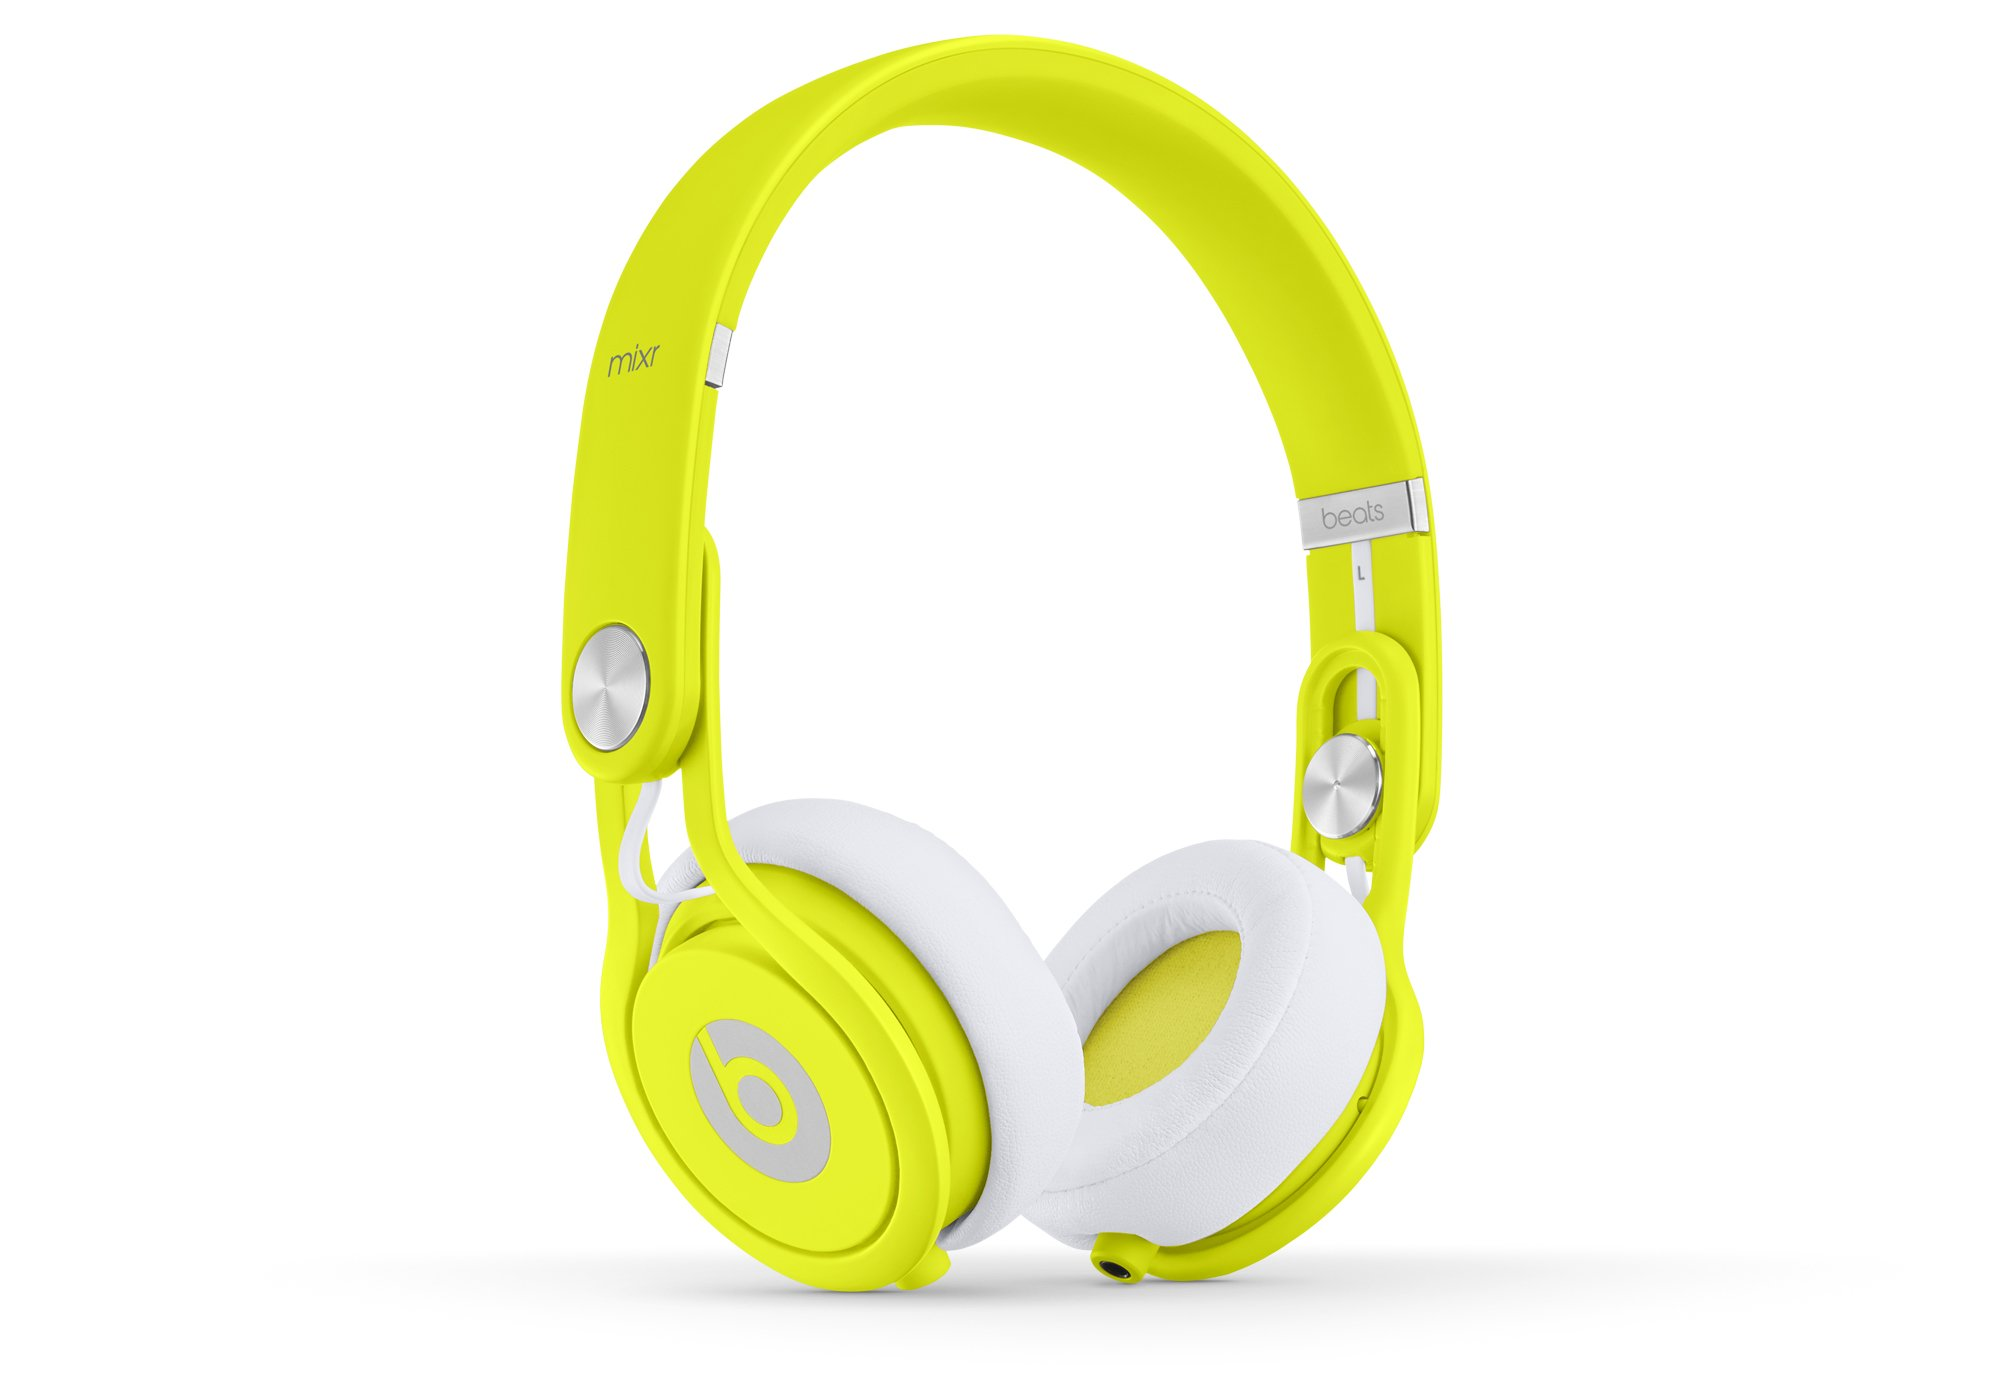 Beats Mixr Wired On-Ear Headphone - Neon Yellow (Discontinued by Manufacturer) by Beats